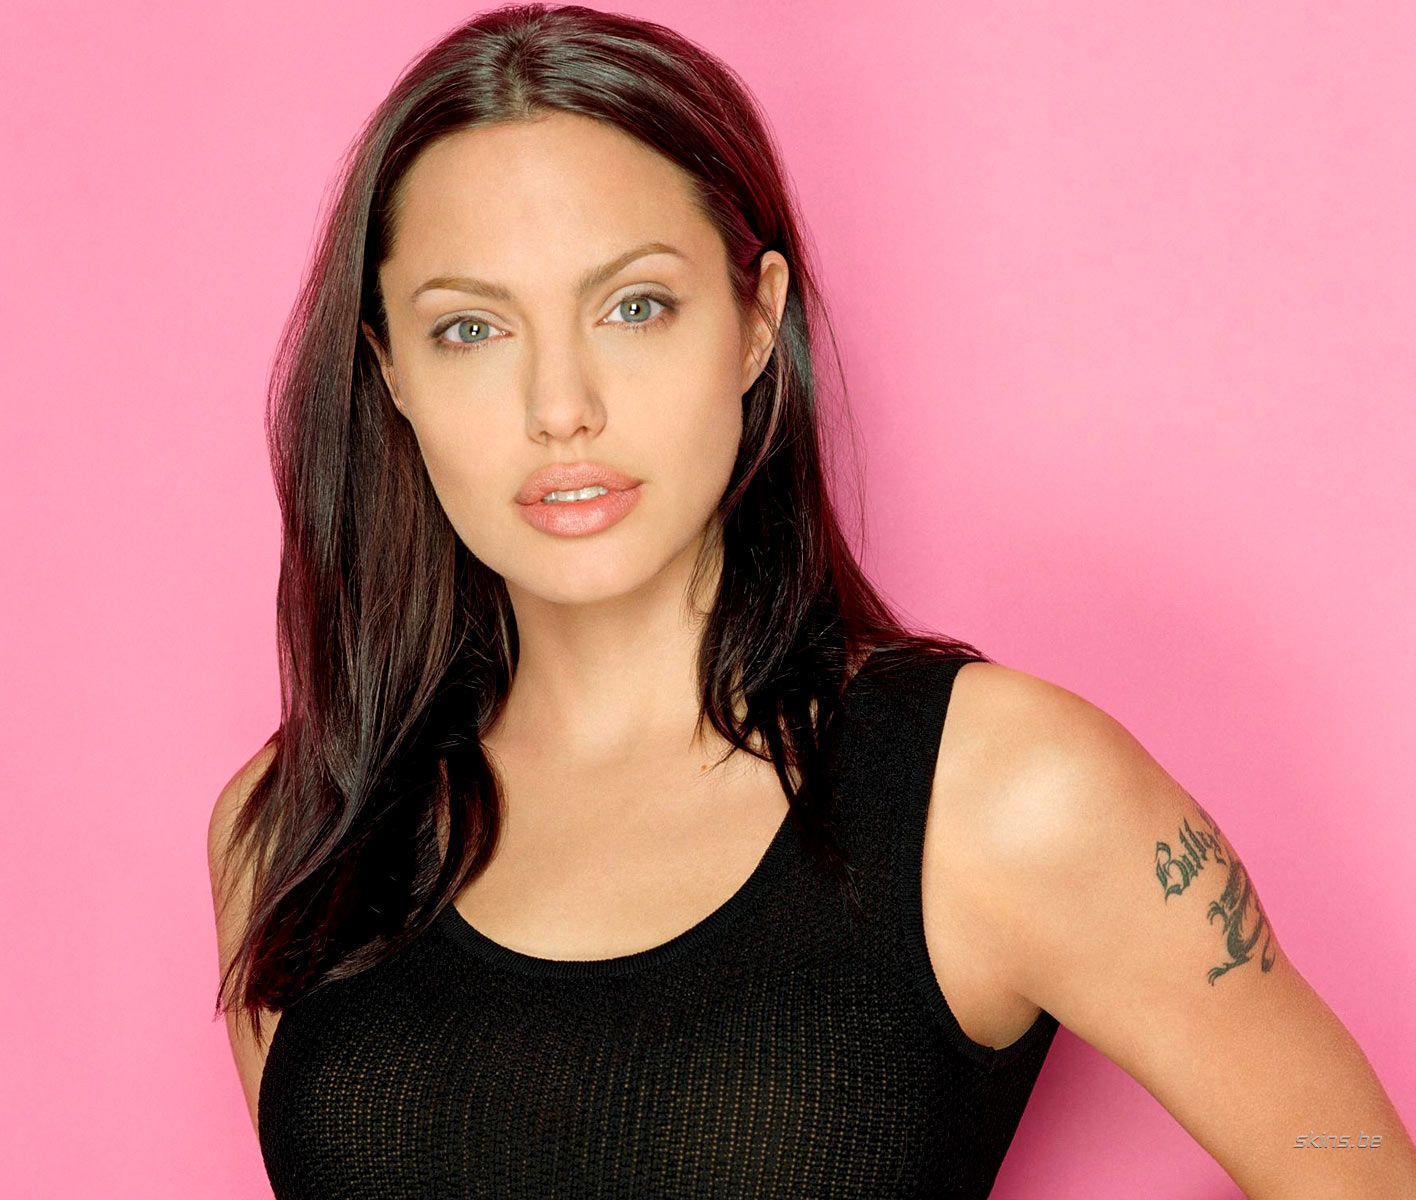 Pictures hottest angelina jolie